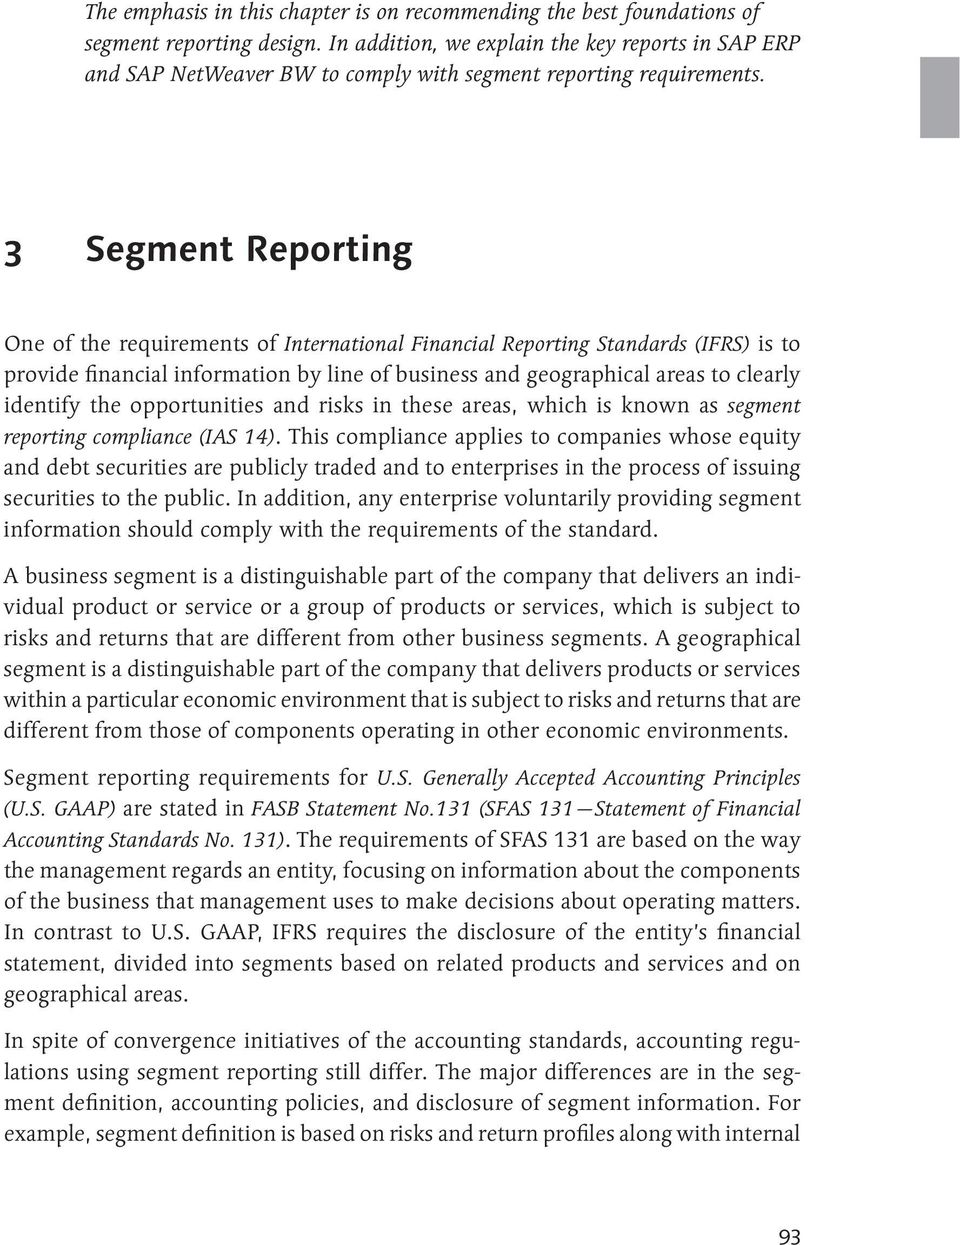 3 Segment Reporting One of the requirements of International Financial Reporting Standards (IFRS) is to provide financial information by line of business and geographical areas to clearly identify